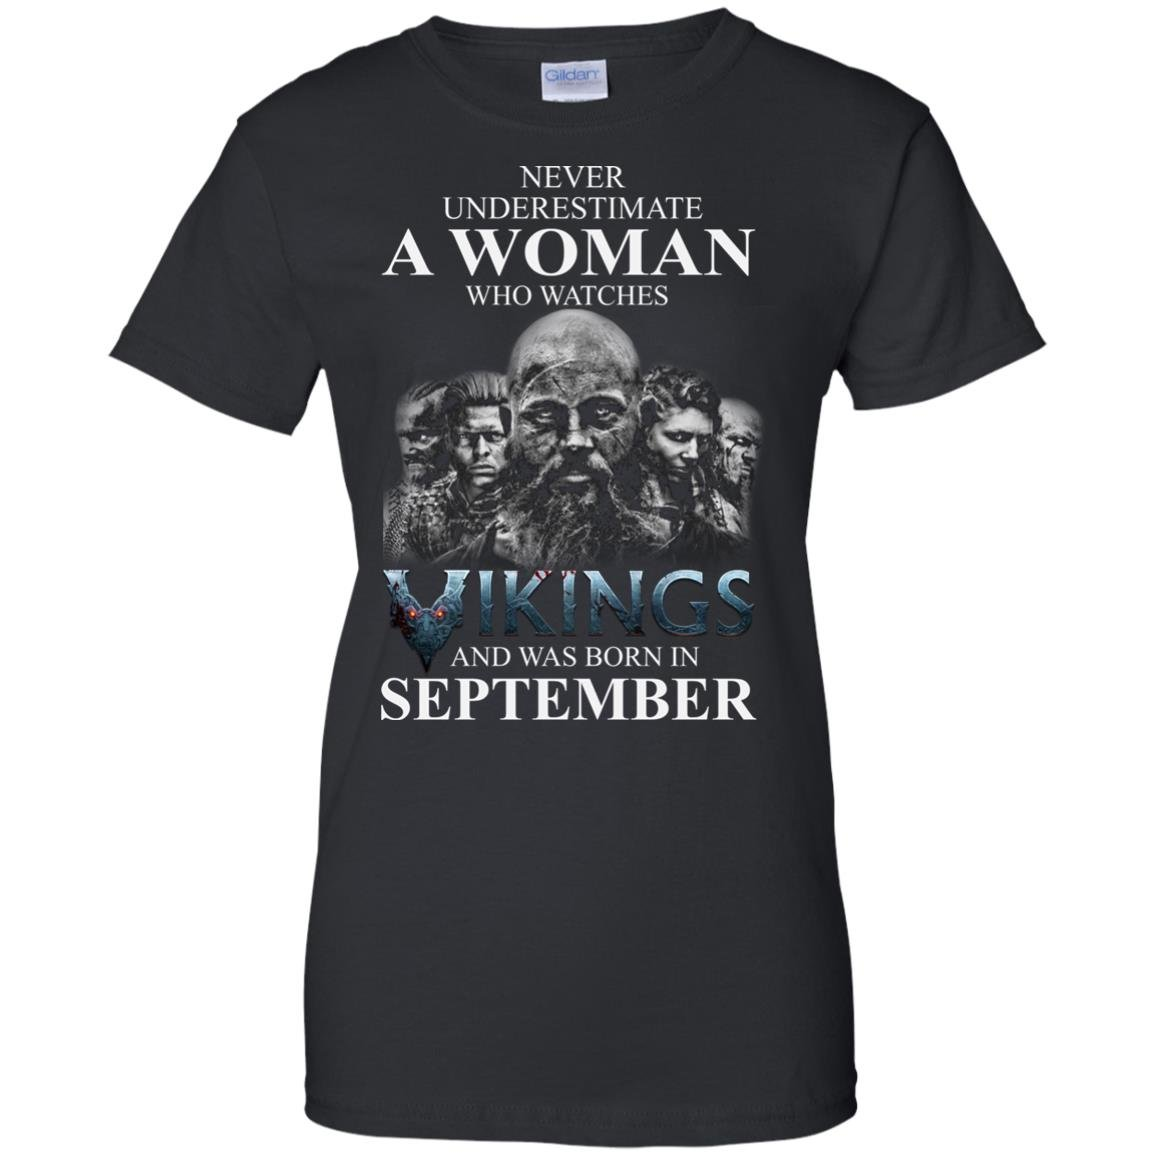 image 1265 - Never Underestimate A woman who watches Vikings and was born in September shirt